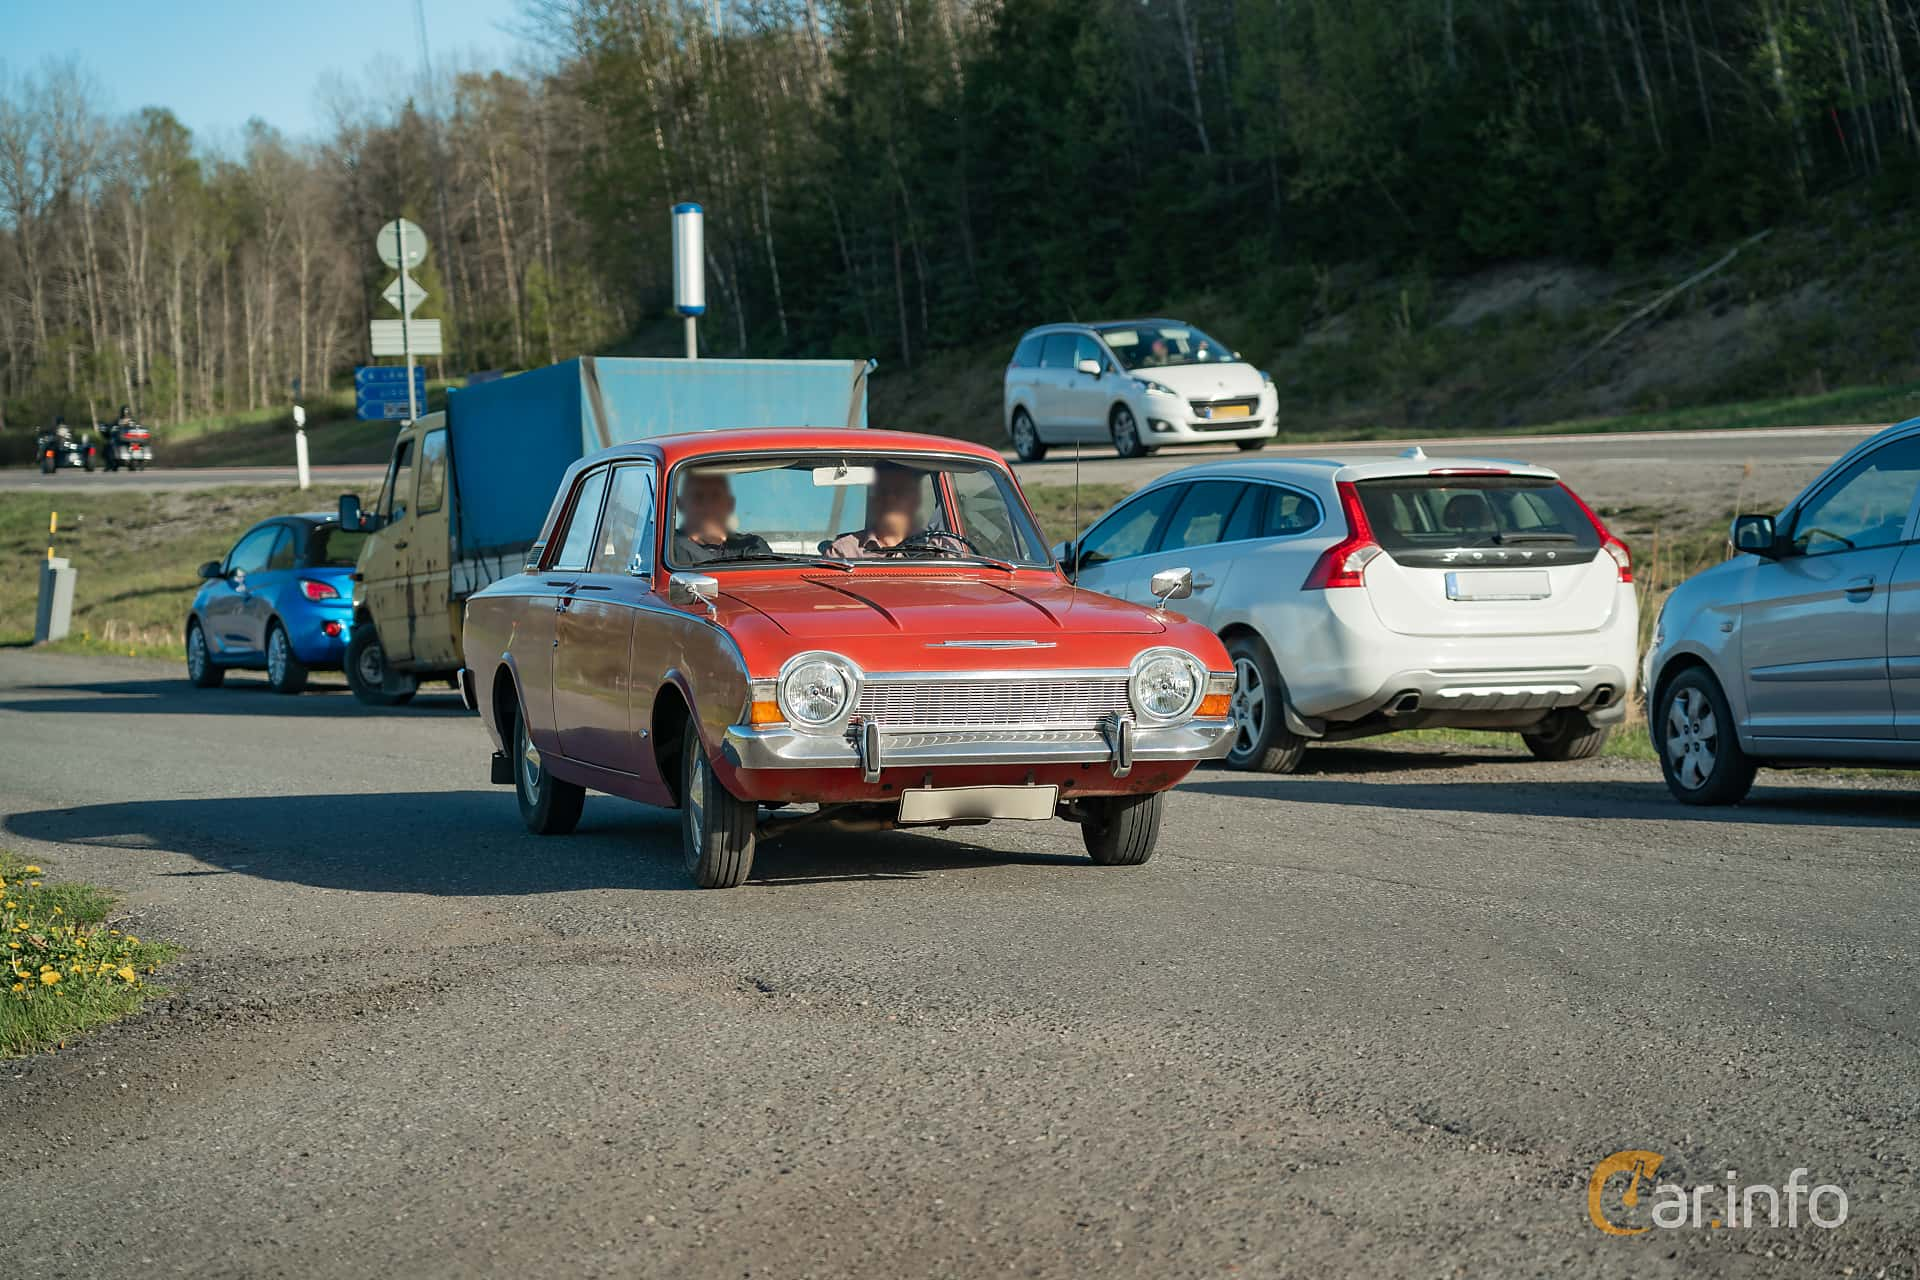 Ford Corsair 2-dörrar Sedan 2.0 Manuell, 83hk, 1966 at Lissma Classic Car 2019 vecka 20